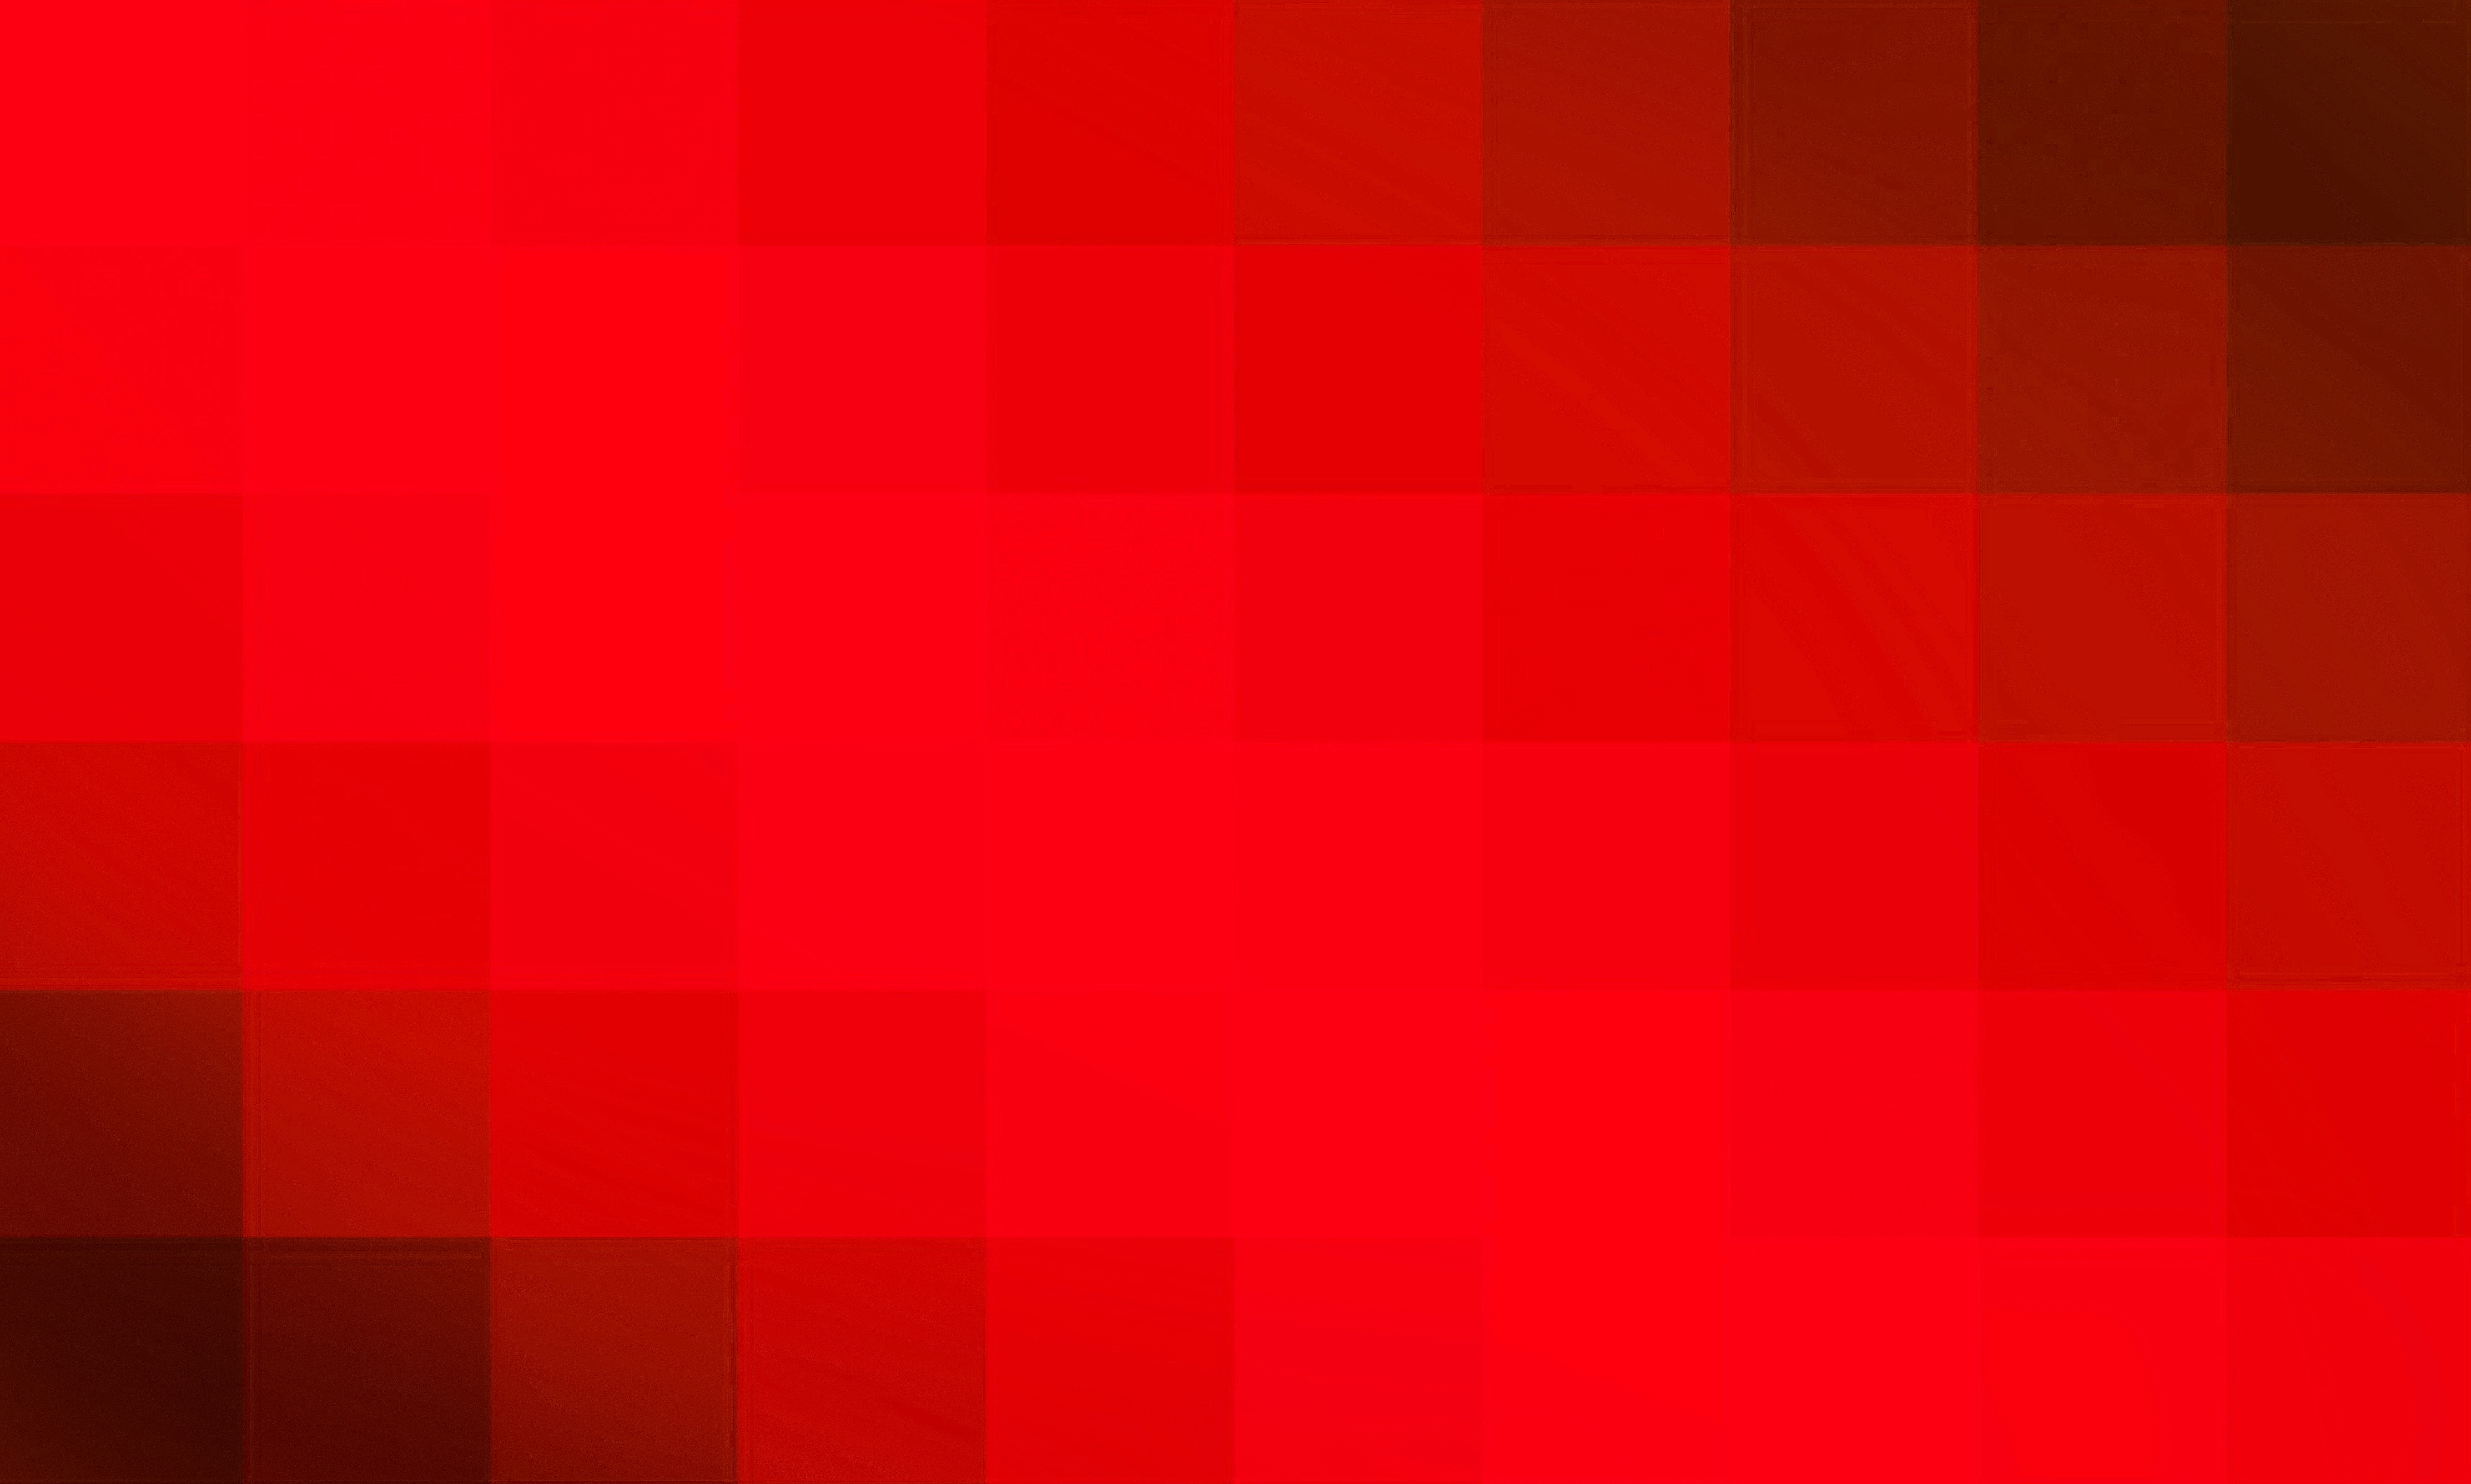 Abstract Bright Red Background Free Image